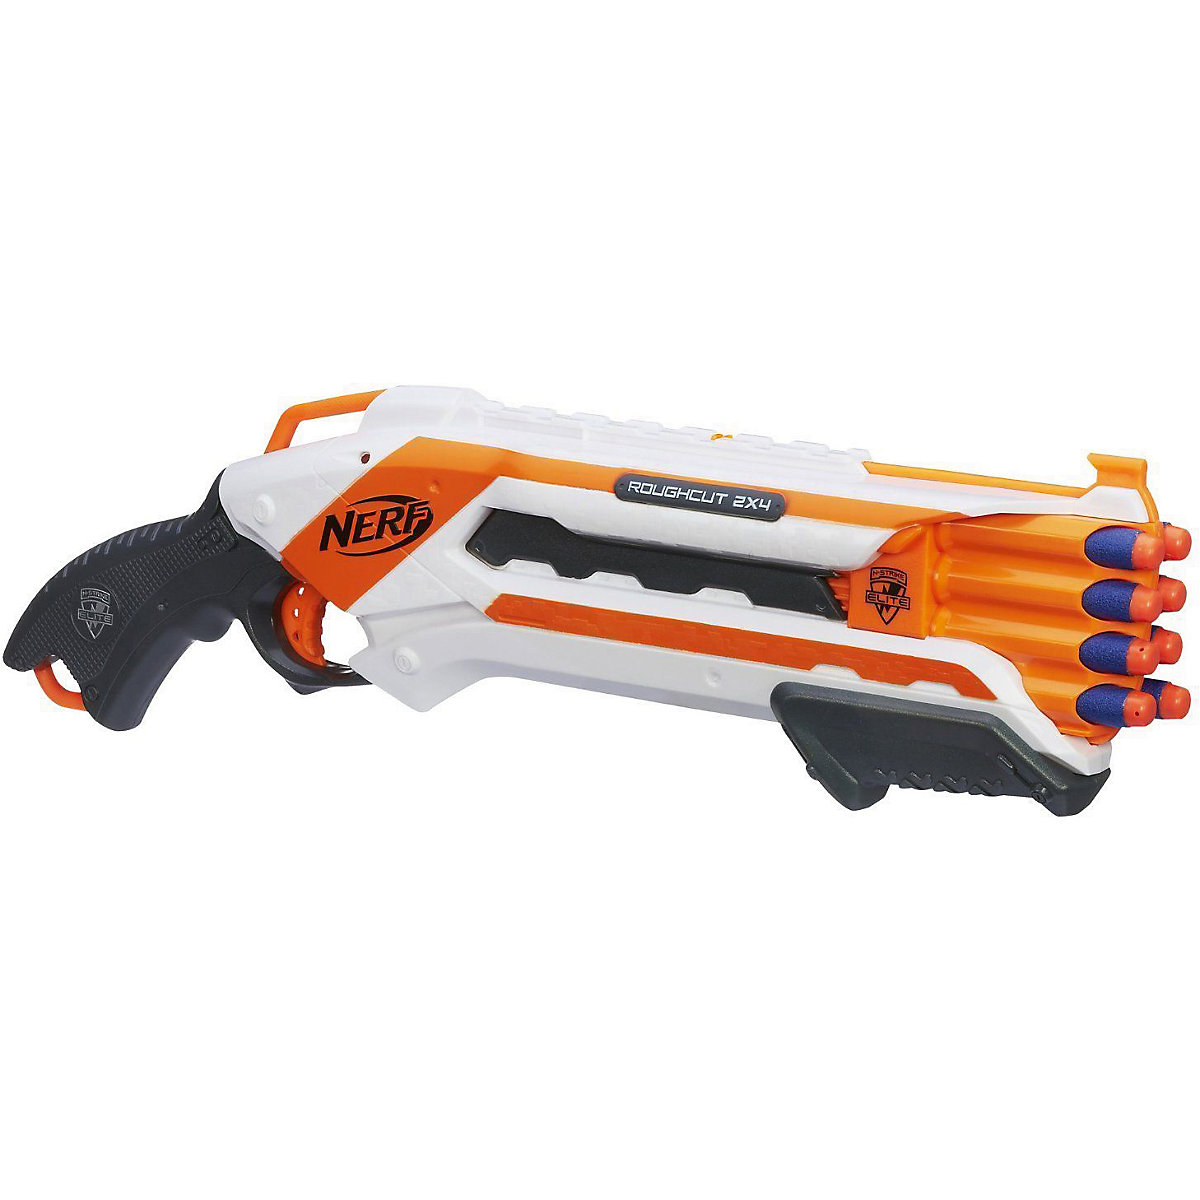 Toy Guns NERF 3222052 Children Kids Toy Gun Weapon Blasters Boys Shooting games Outdoor play free shipping surefir led weapon x400 handgun flashlight with red laser sight for rifle scope pistola airsoft guns